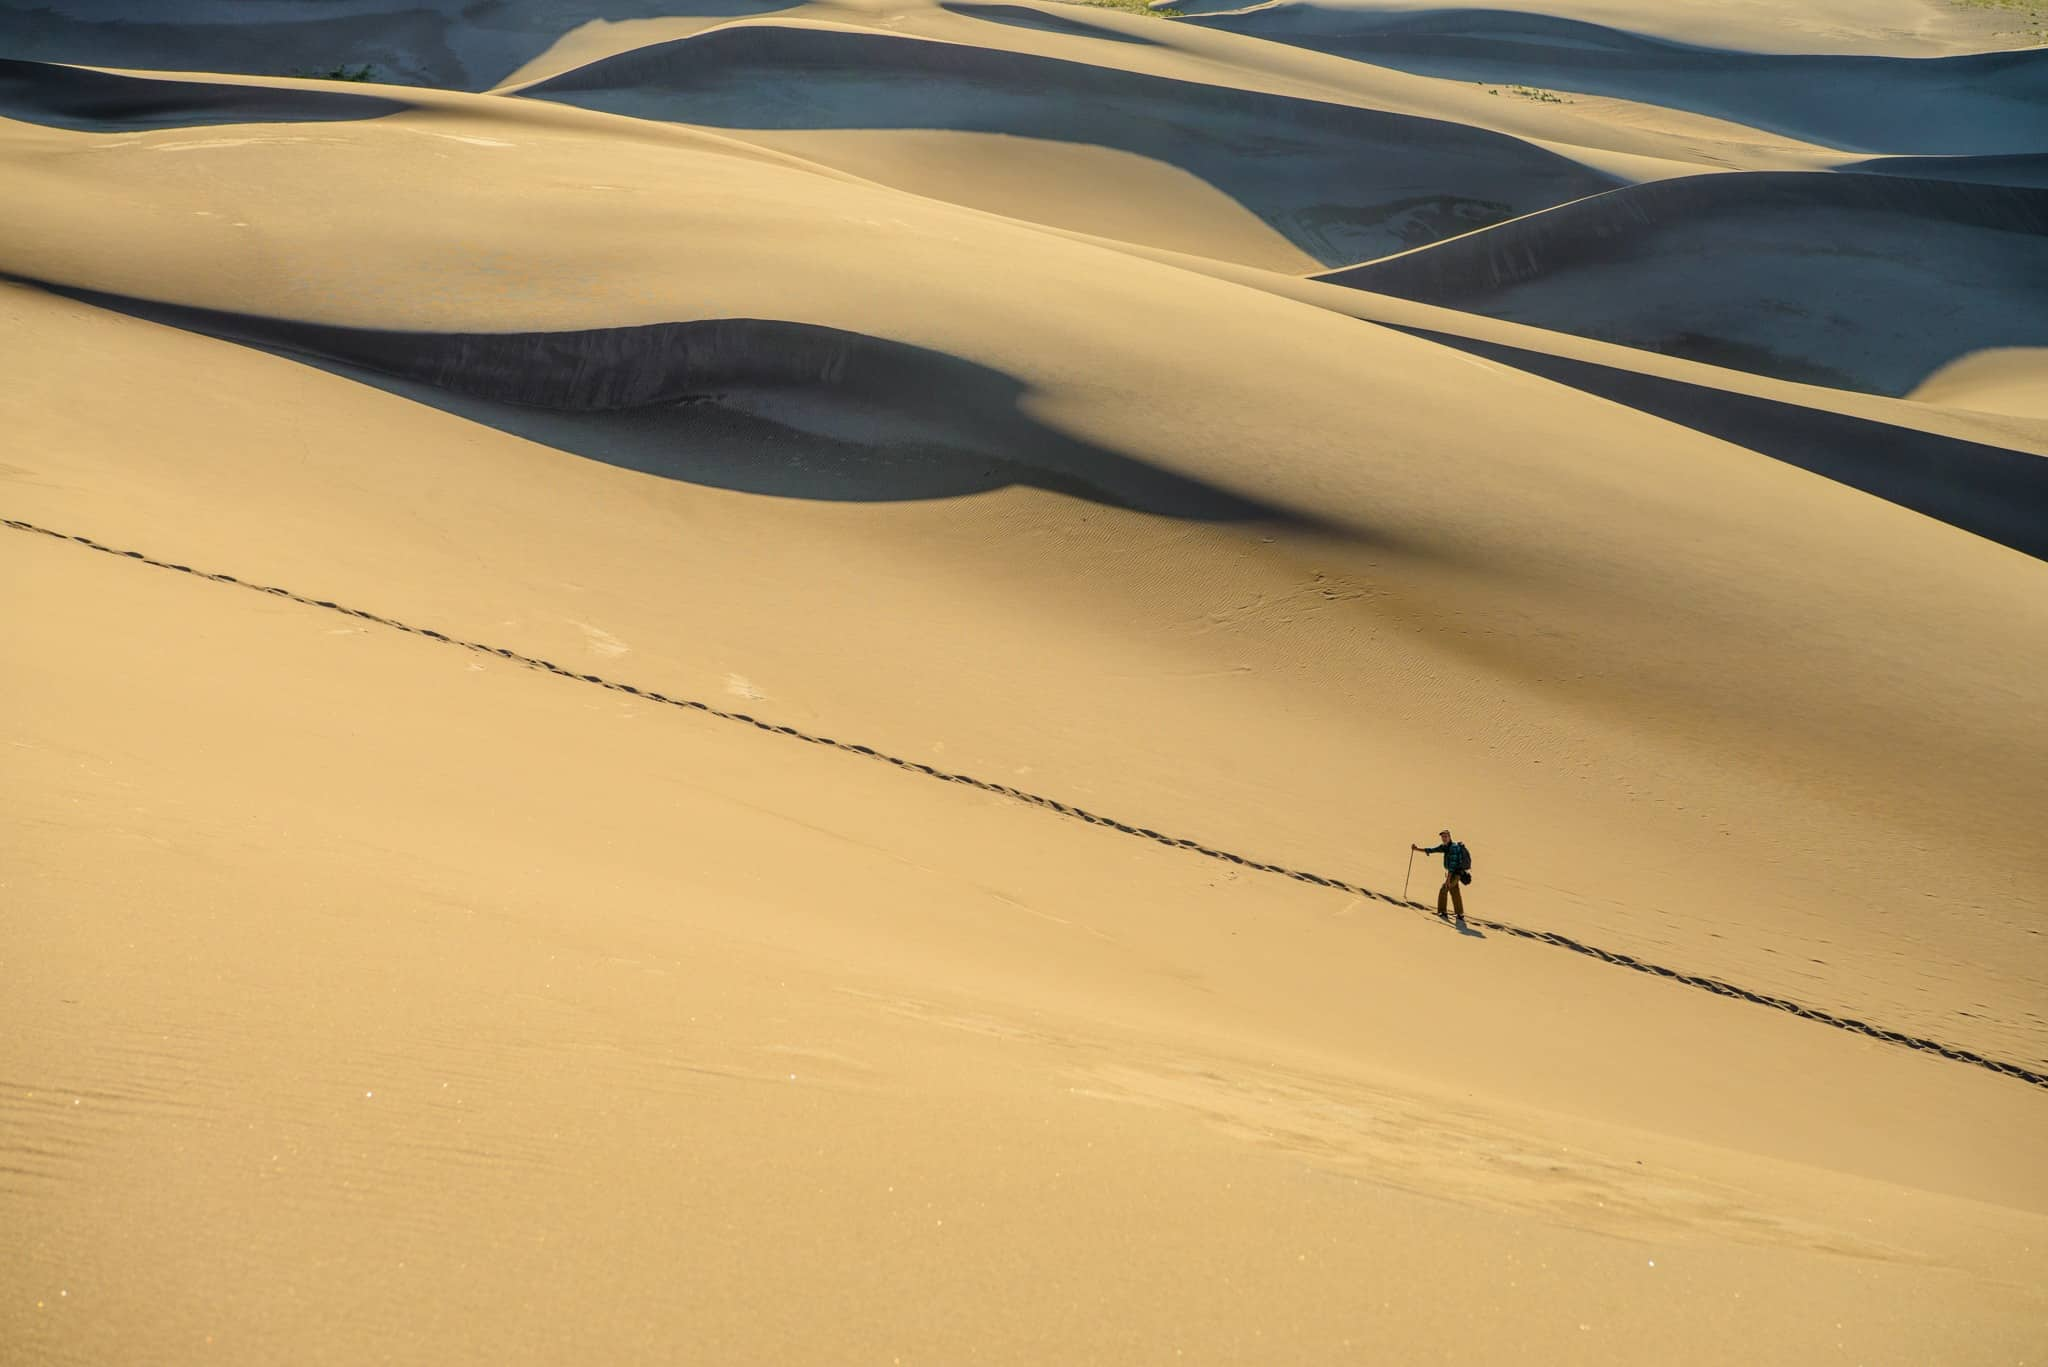 A distant hiker stops for a breather while following a trail up to the top of the first ridge of dunes in Great Sand Dunes National Park and Preserve, near Alamosa, Colorado.